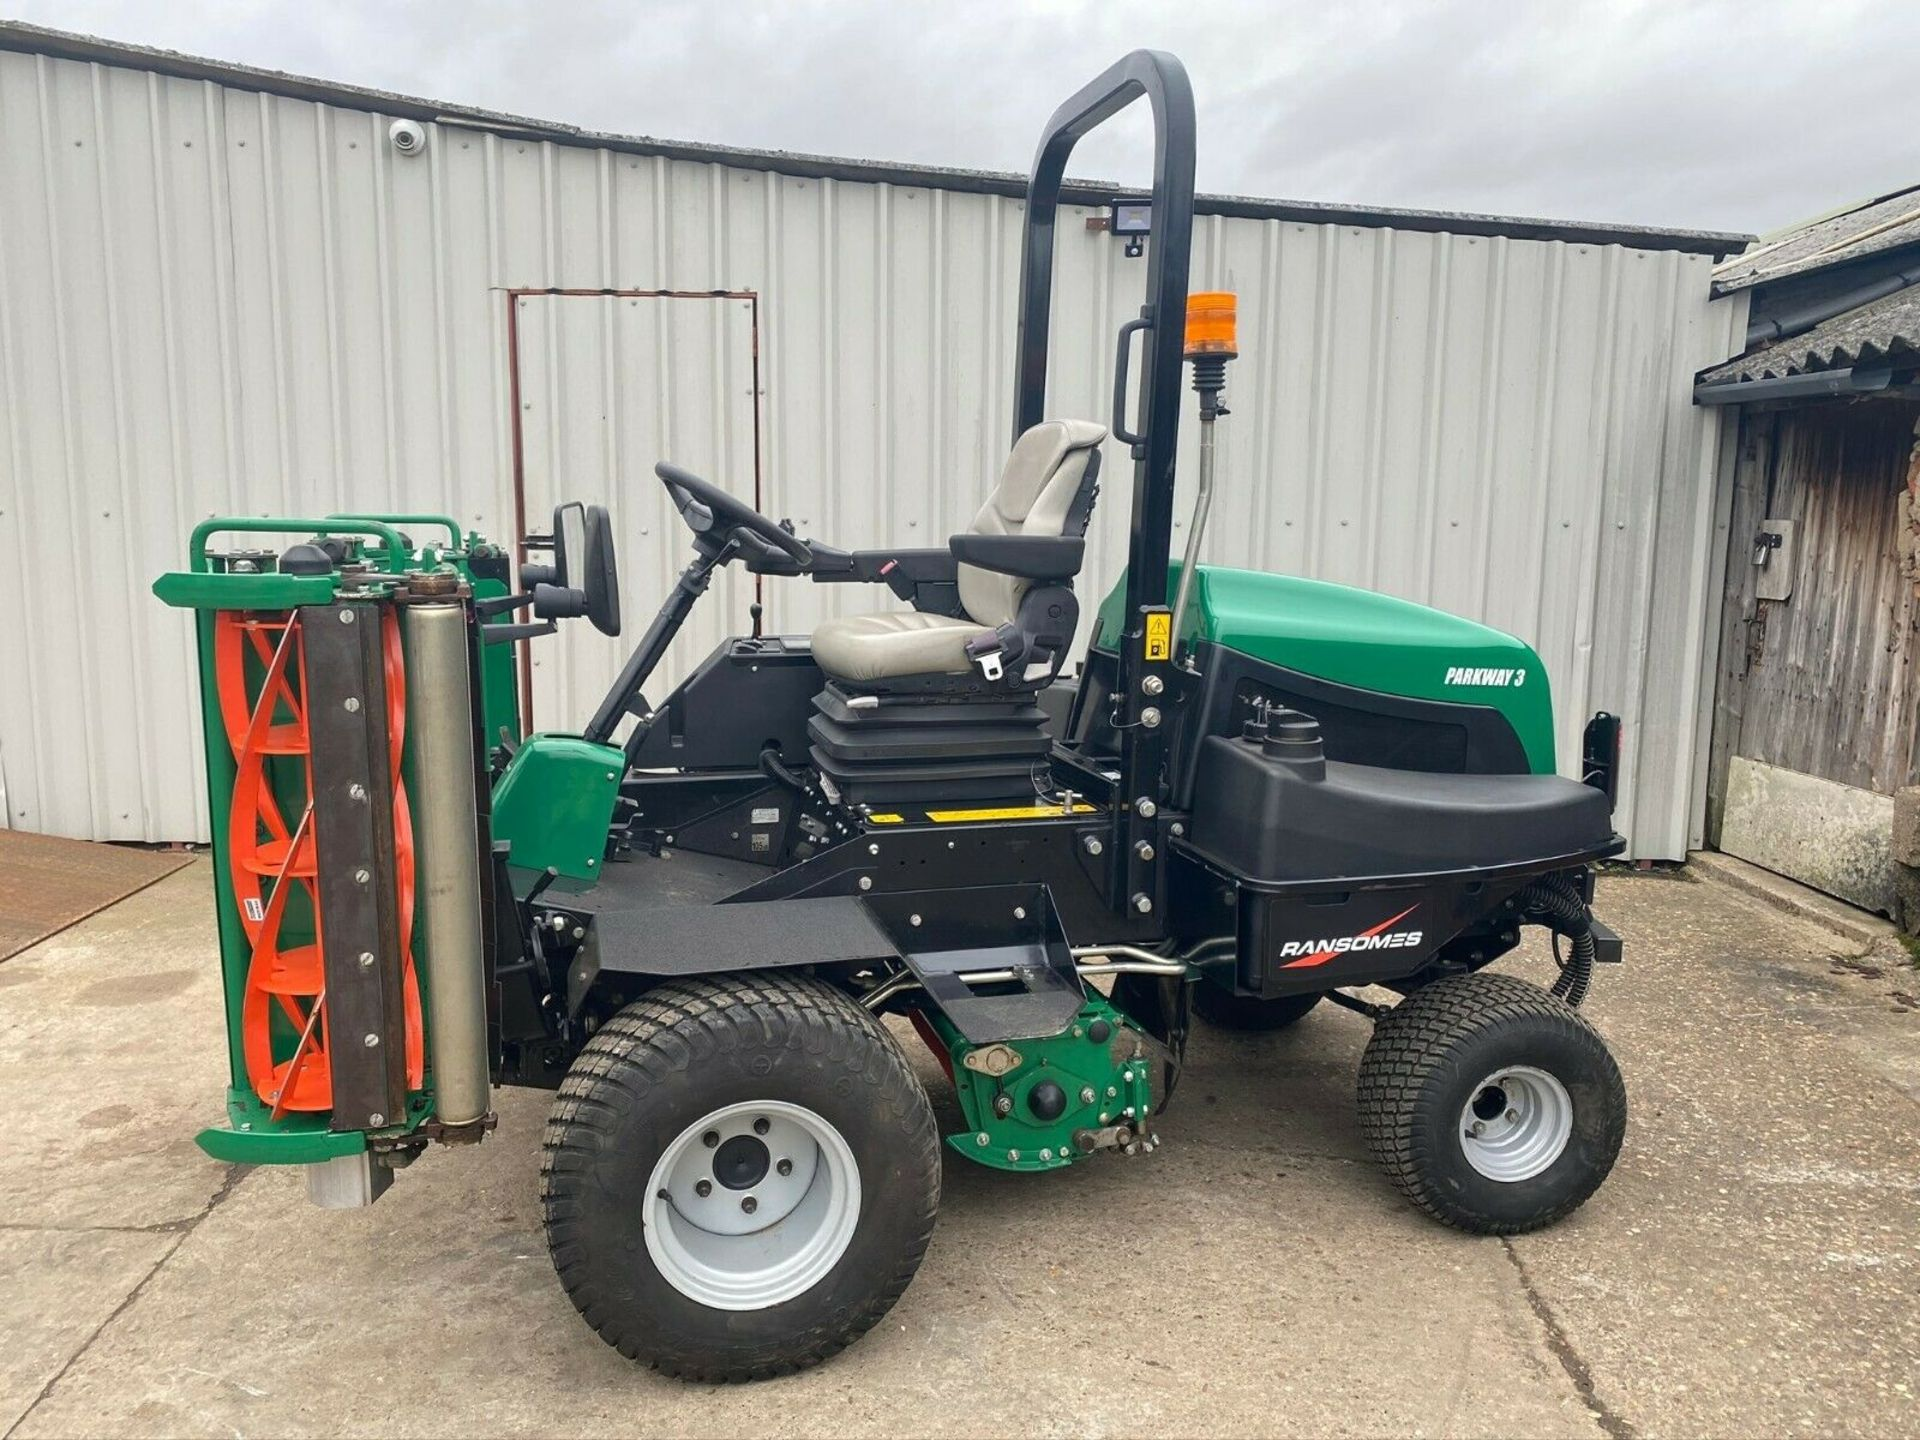 Lot 38 - IMMACULATE! RANSOMES PARKWAY 3 TRIPLE CYLINDER MOWER, ONLY 953 HOURS, YEAR 2015, NEW CYLINDERS ETC